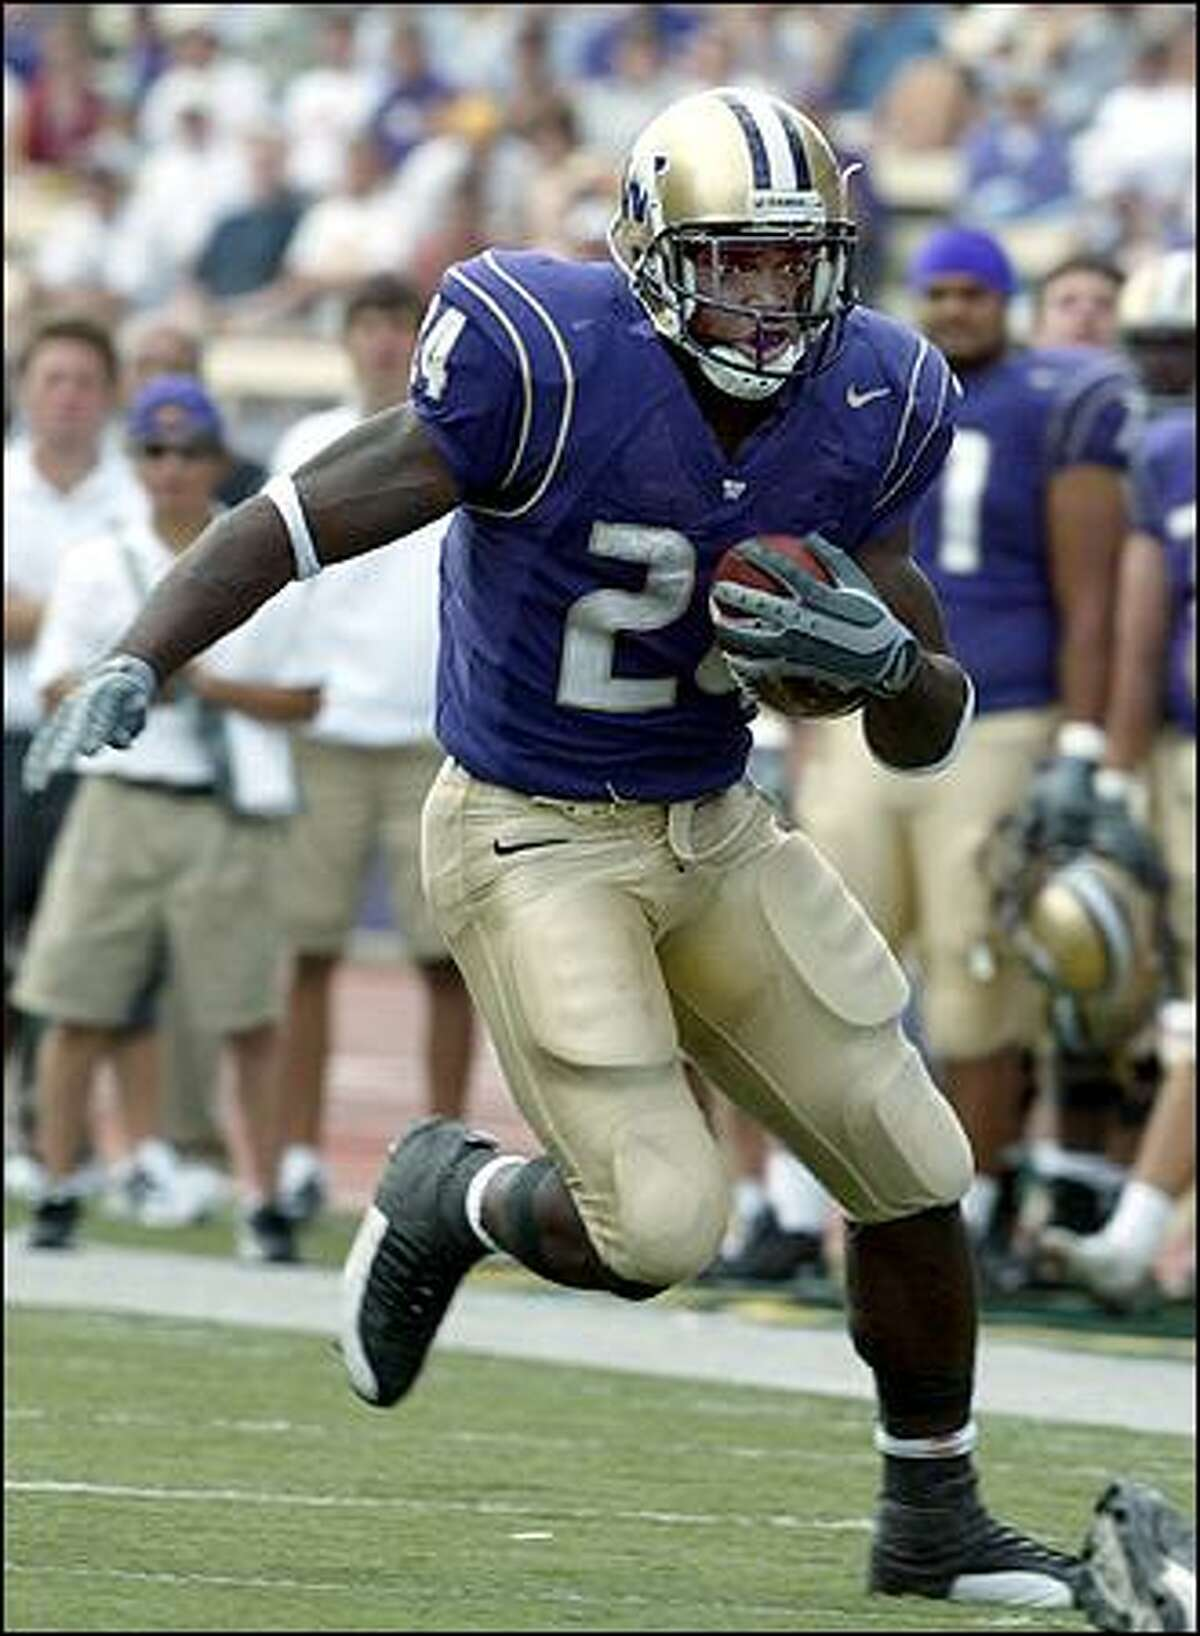 The UW's Rich Alexis runs down the sideline. He gained 74 yards on 18 carries against Indiana Saturday.